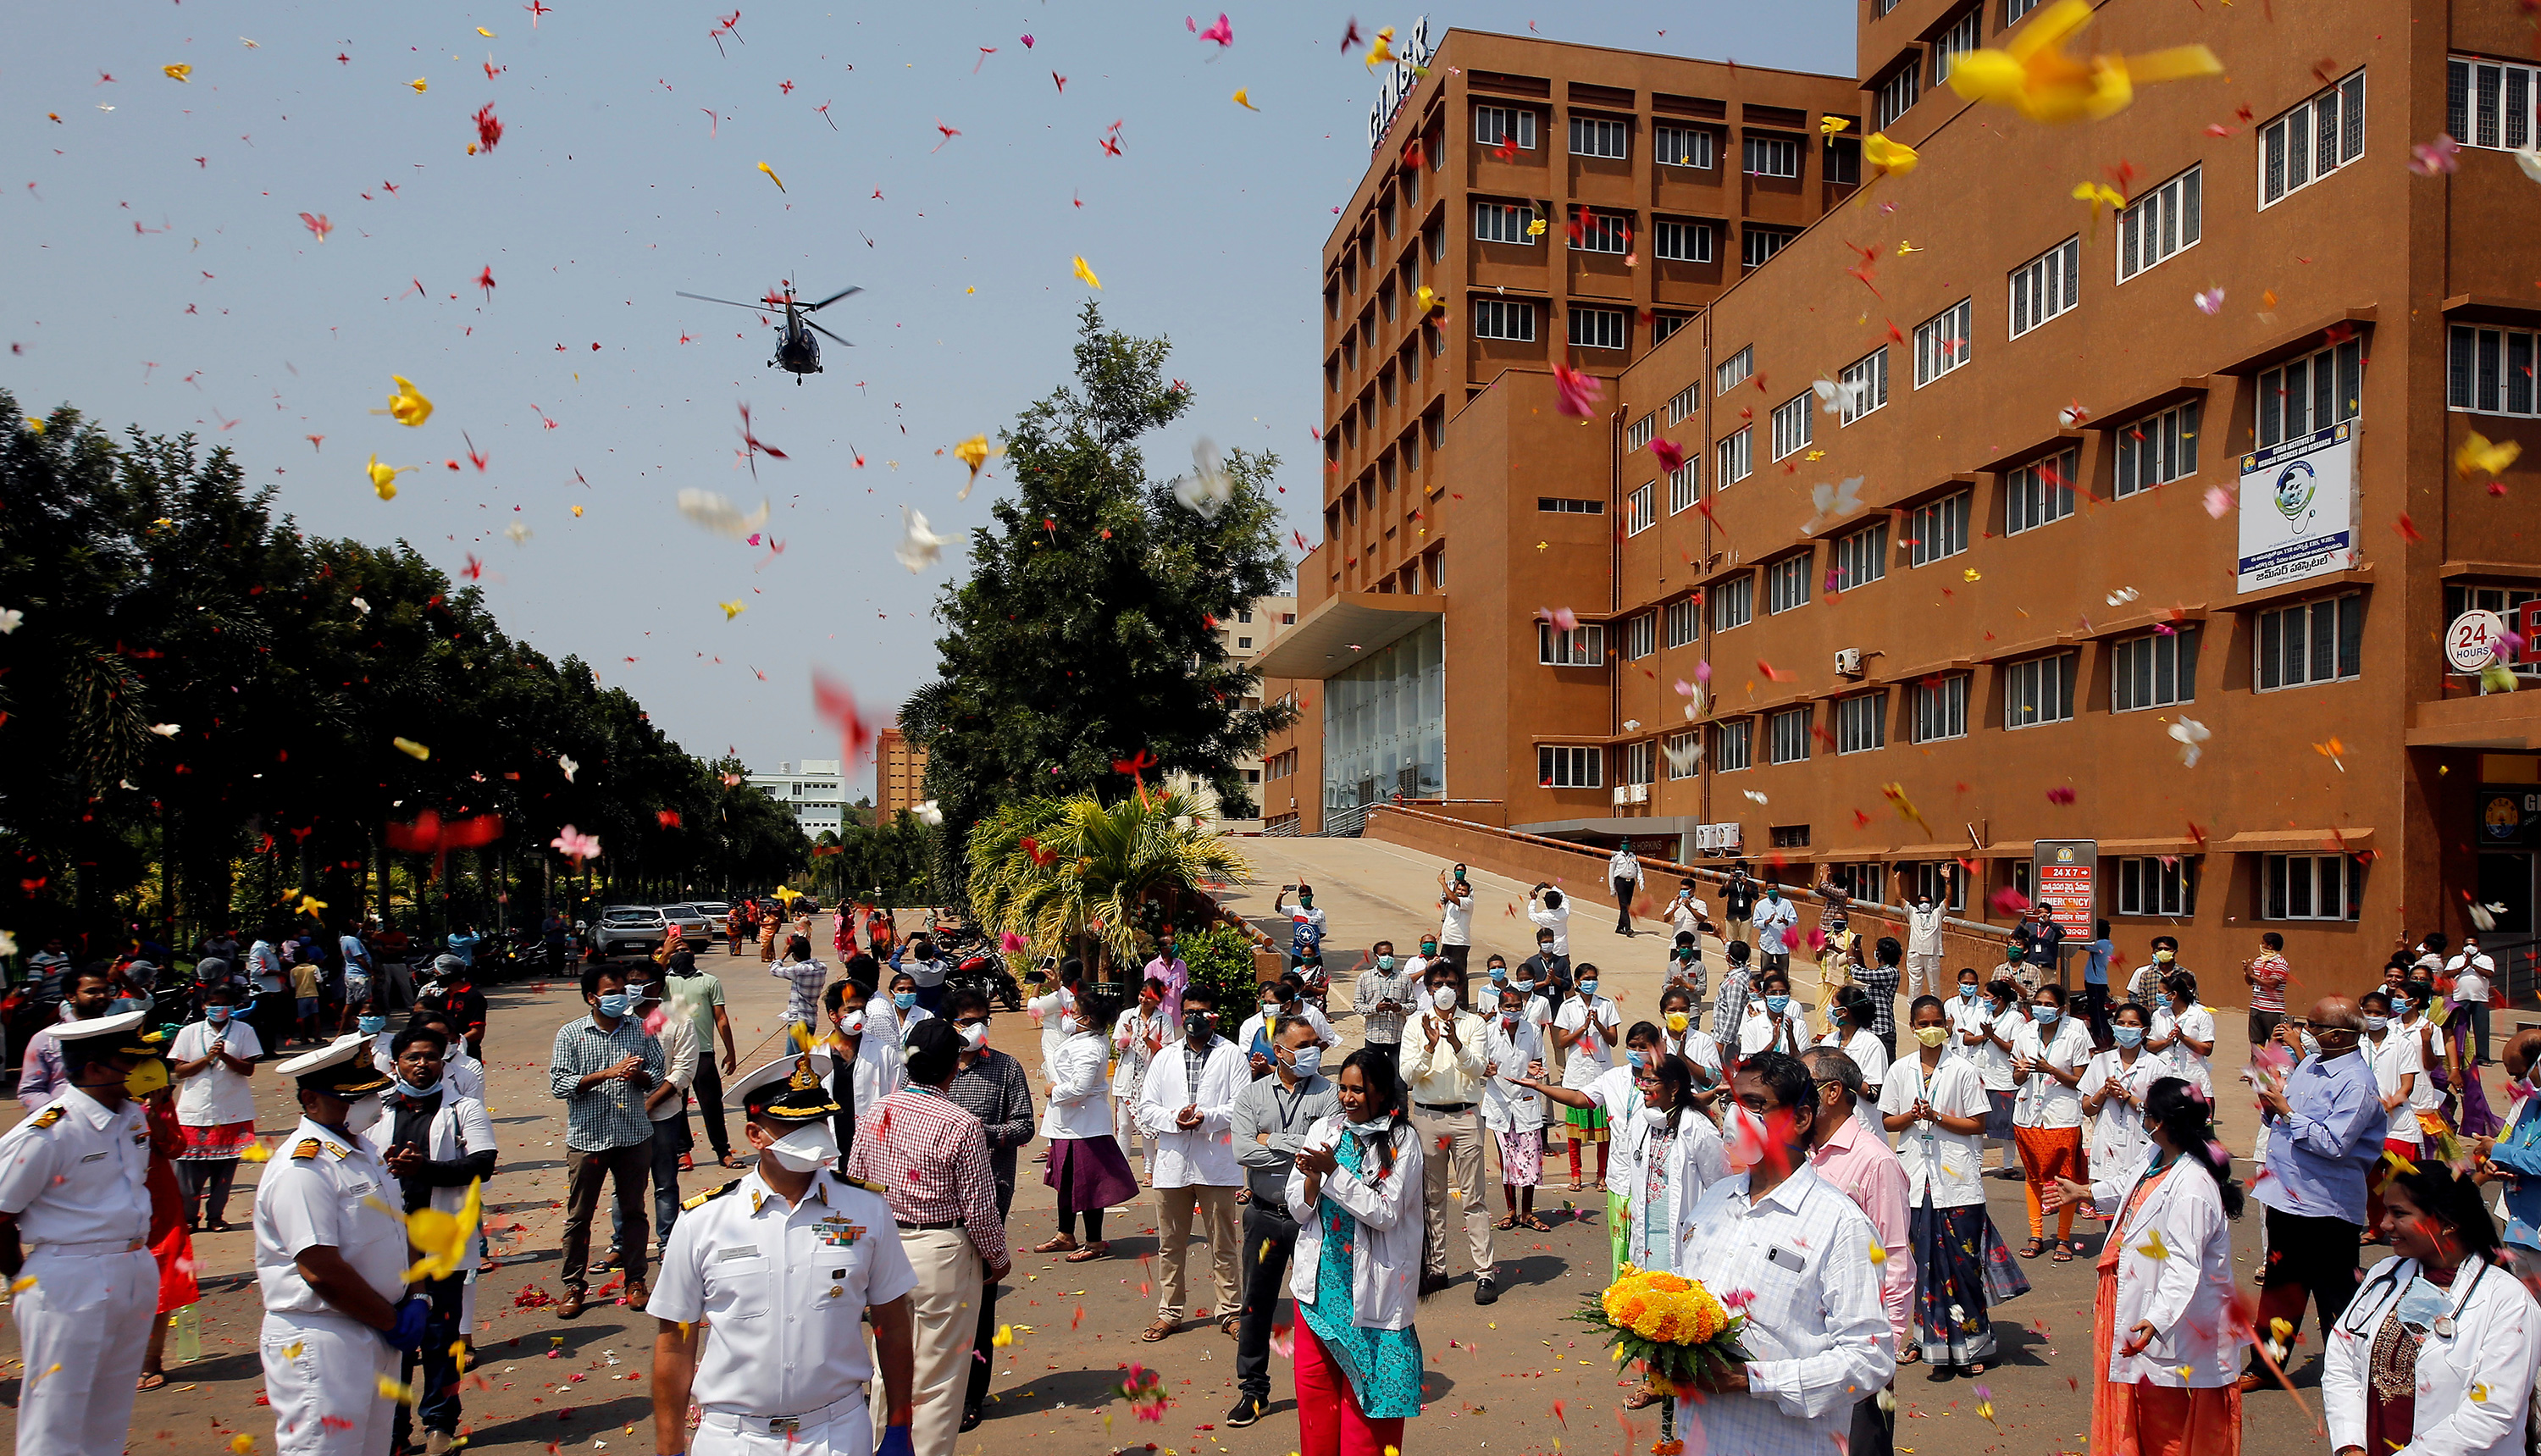 The photo shows a large brick hospital with lots of health workers and some uniformed naval officers out front as a shower of flower pedals rains down on them from above.